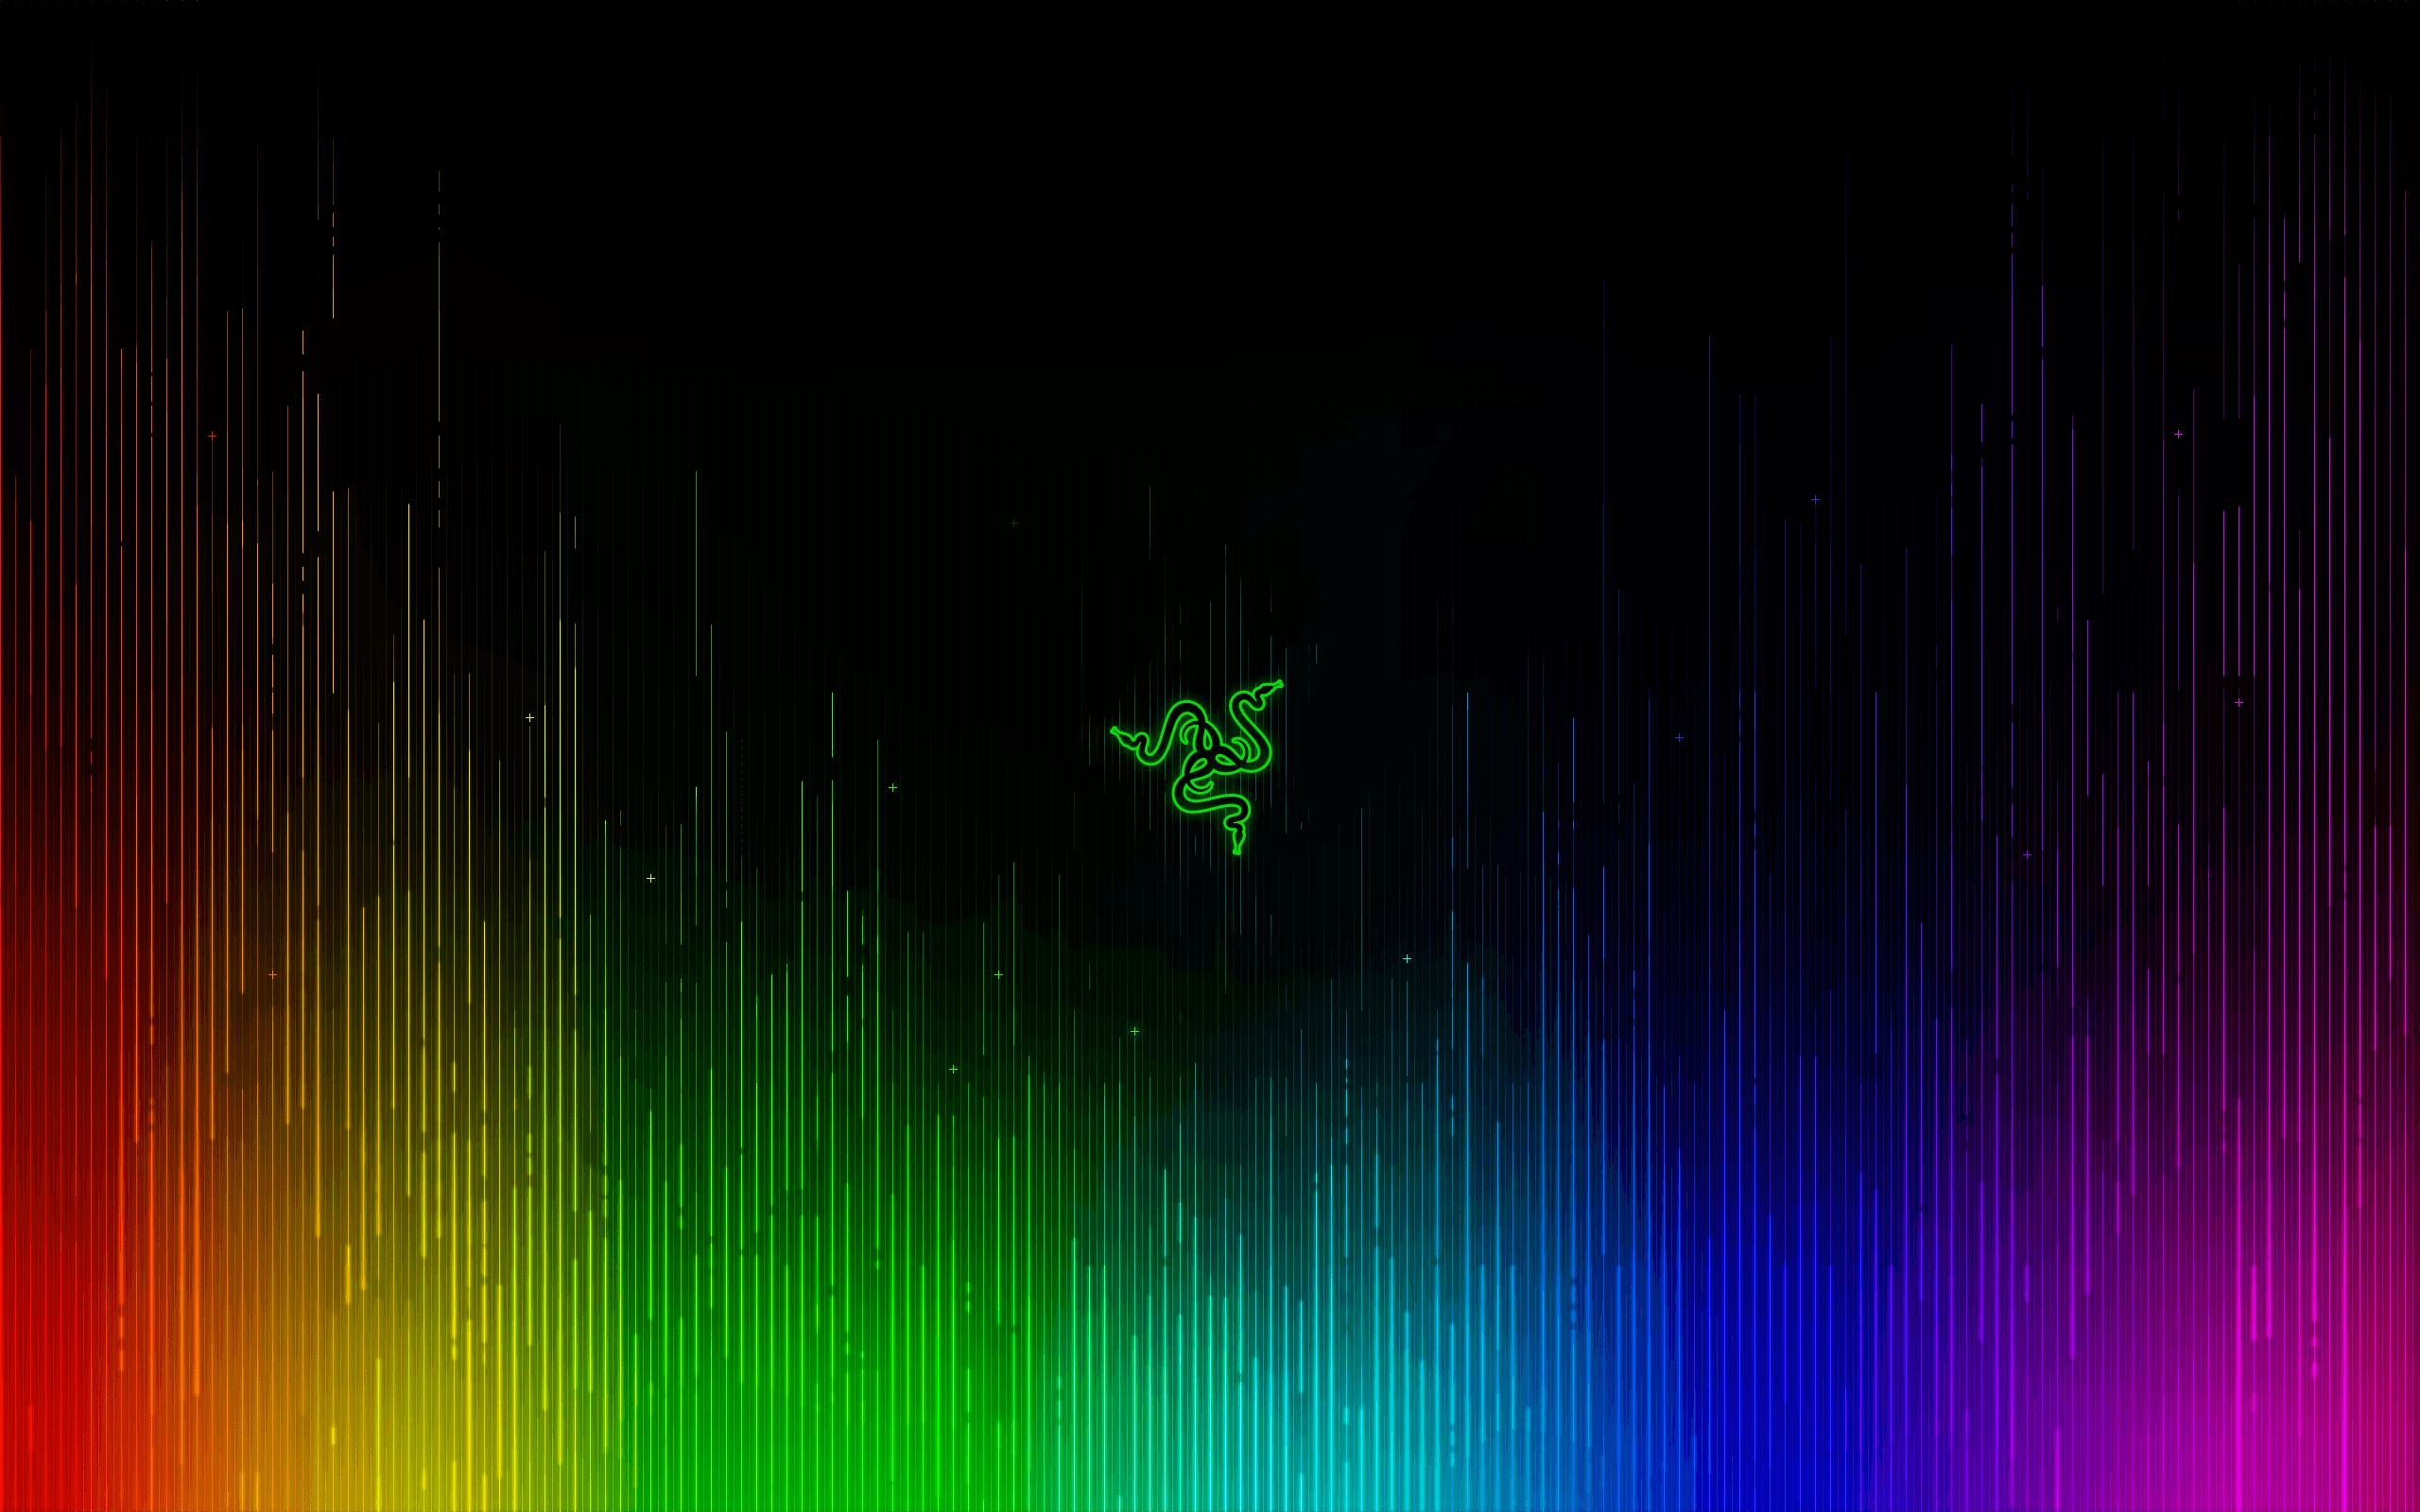 10 Most Popular 4k Gaming Wallpaper Full Hd 1920 1080 For: 10 Most Popular Razer Chroma Wallpaper 1920X1080 FULL HD